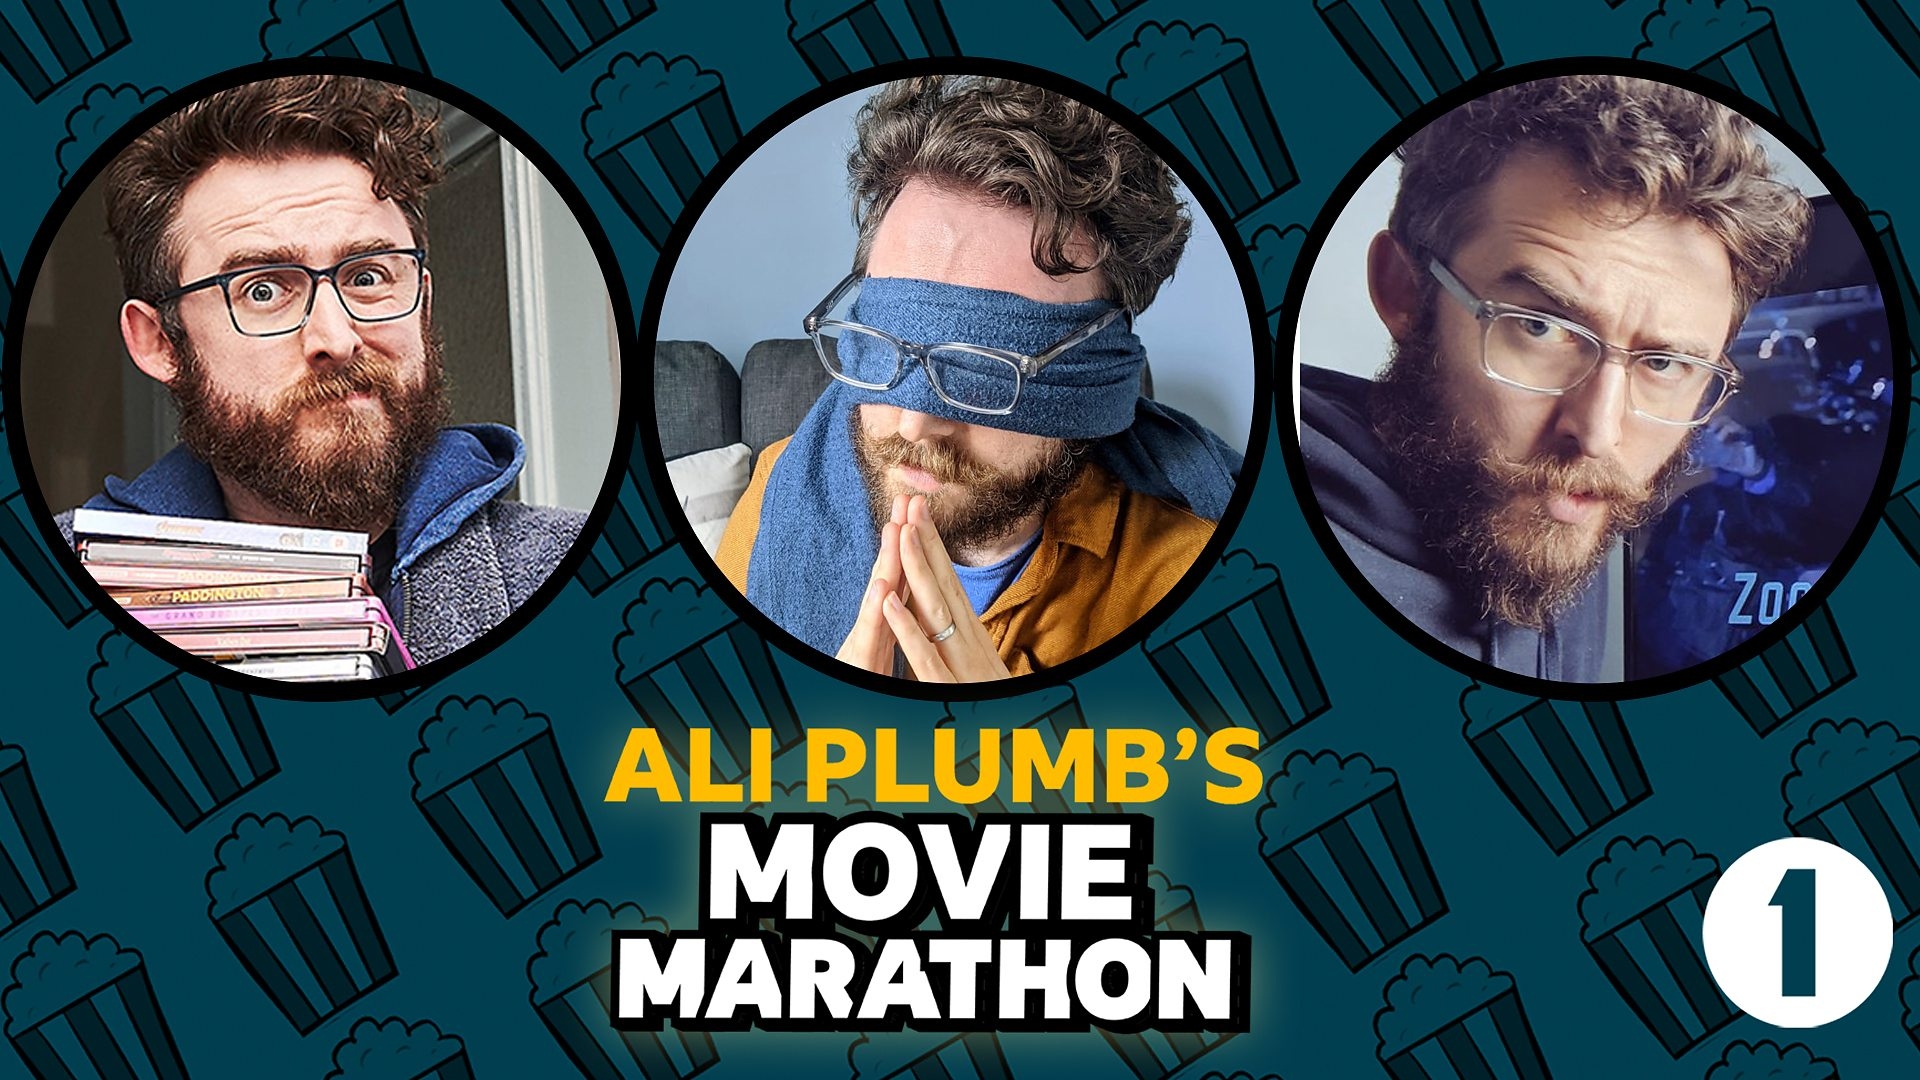 Bbc Radio 1 Radio 1 S Screen Time Ali Plumb S Movie Marathon Here S How Our Film Critic Watched 37 Films In 5 Days